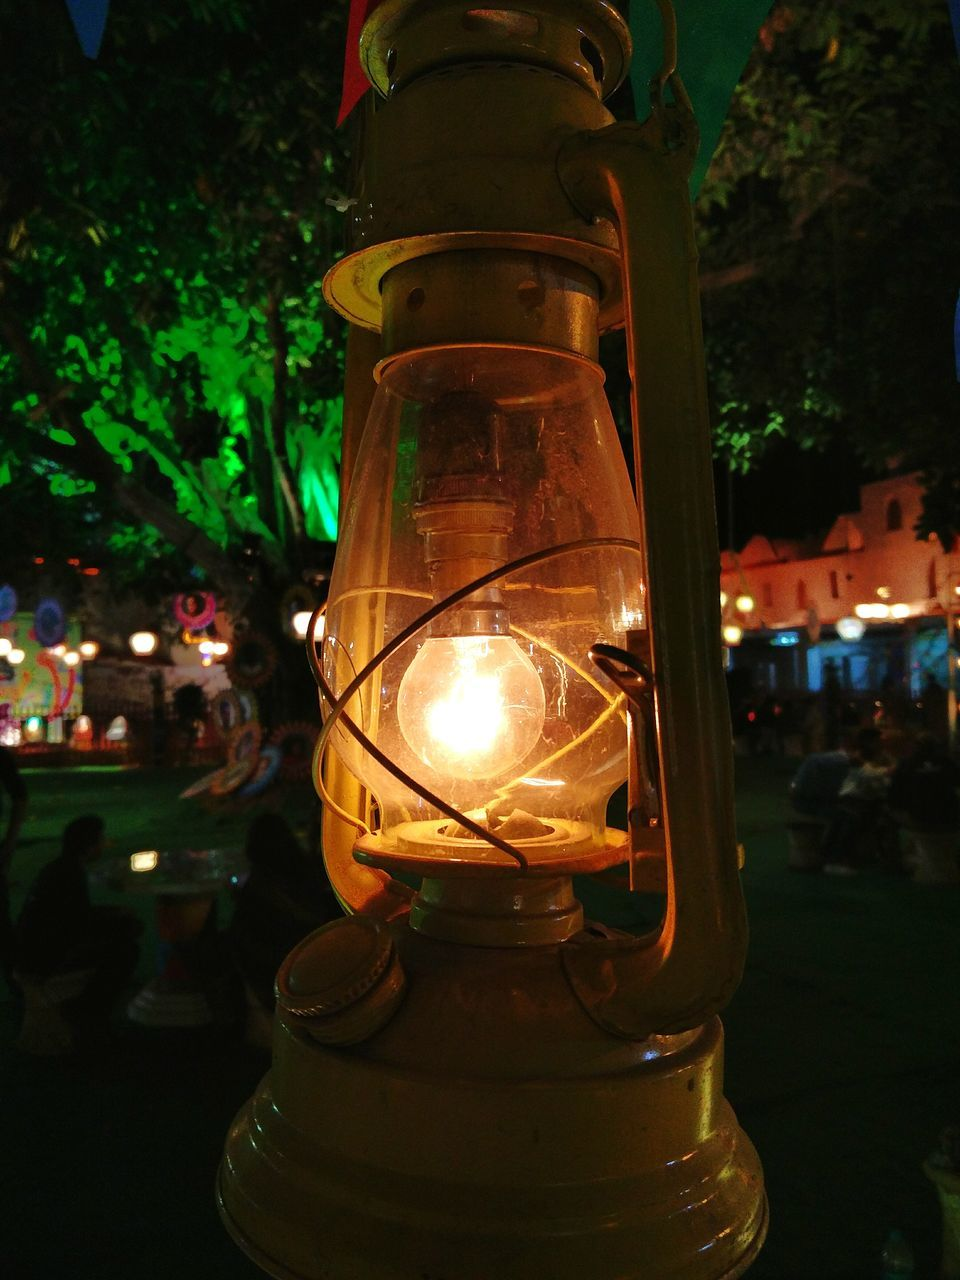 Close-Up Of Illuminated Light Bulb In Oil Lamp At Night